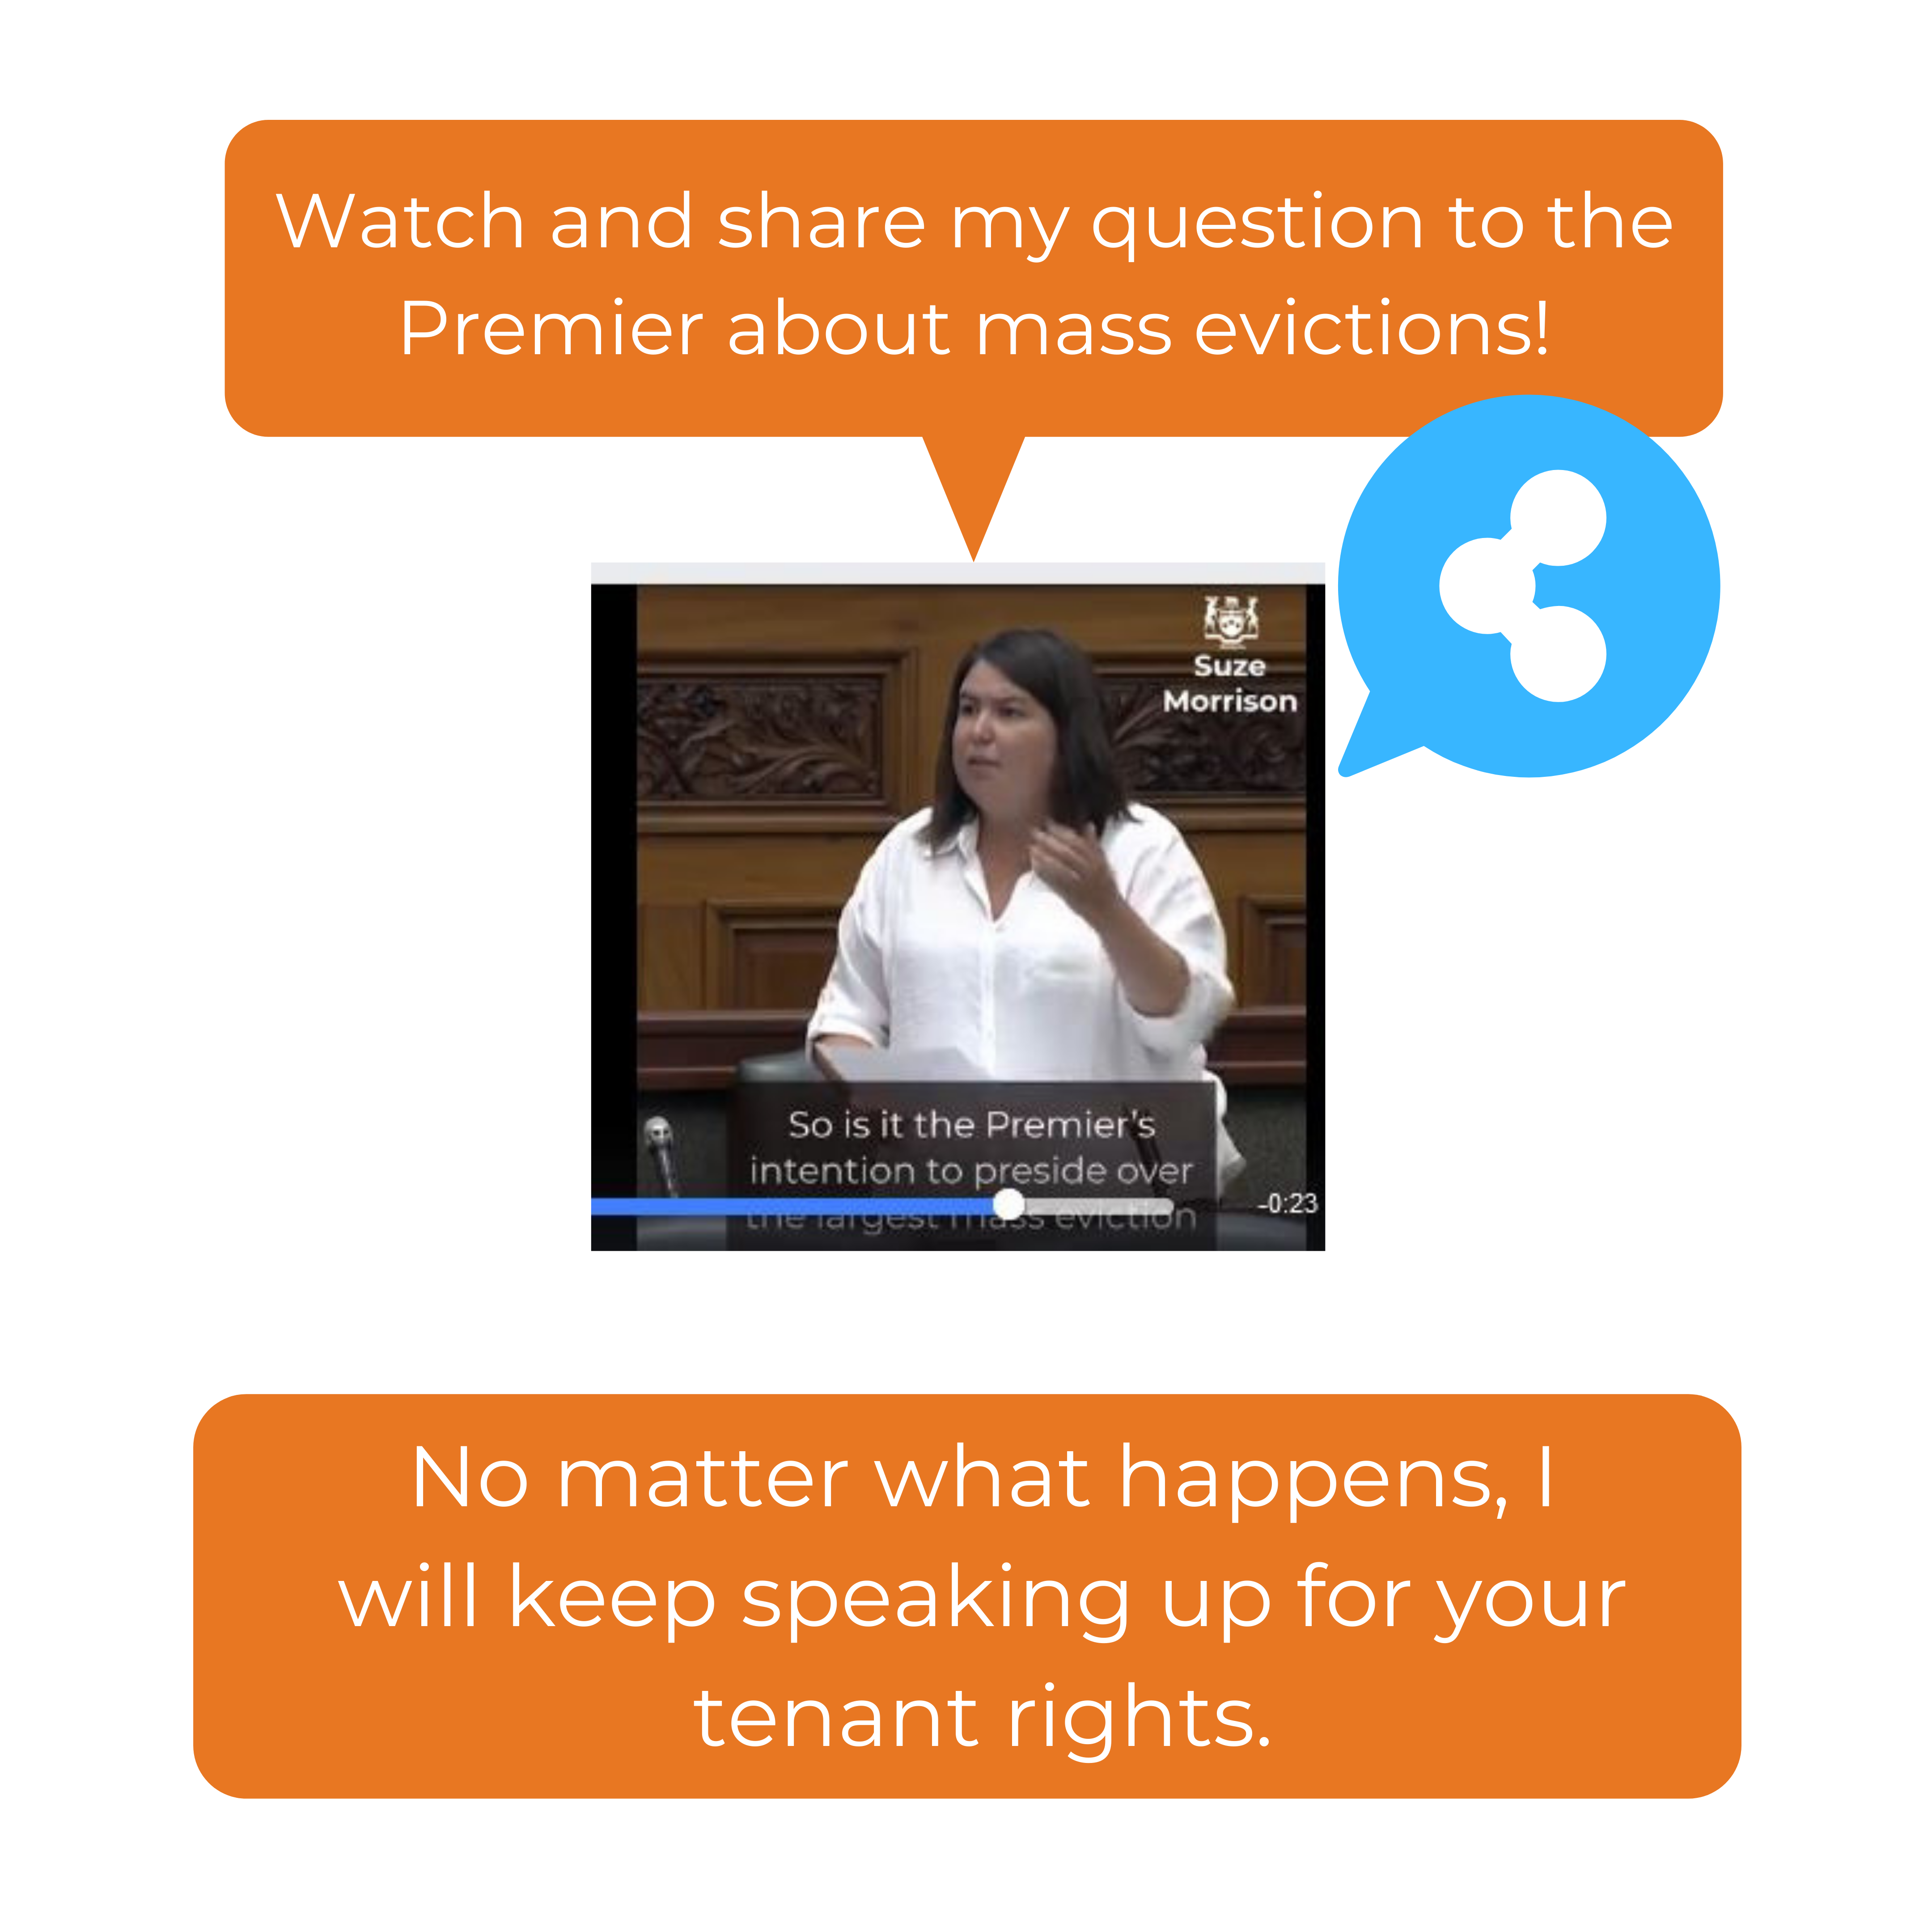 Watch and share my question to the Premier about mass evictions! No matter what happens, I will keep speaking up for your tenant rights.